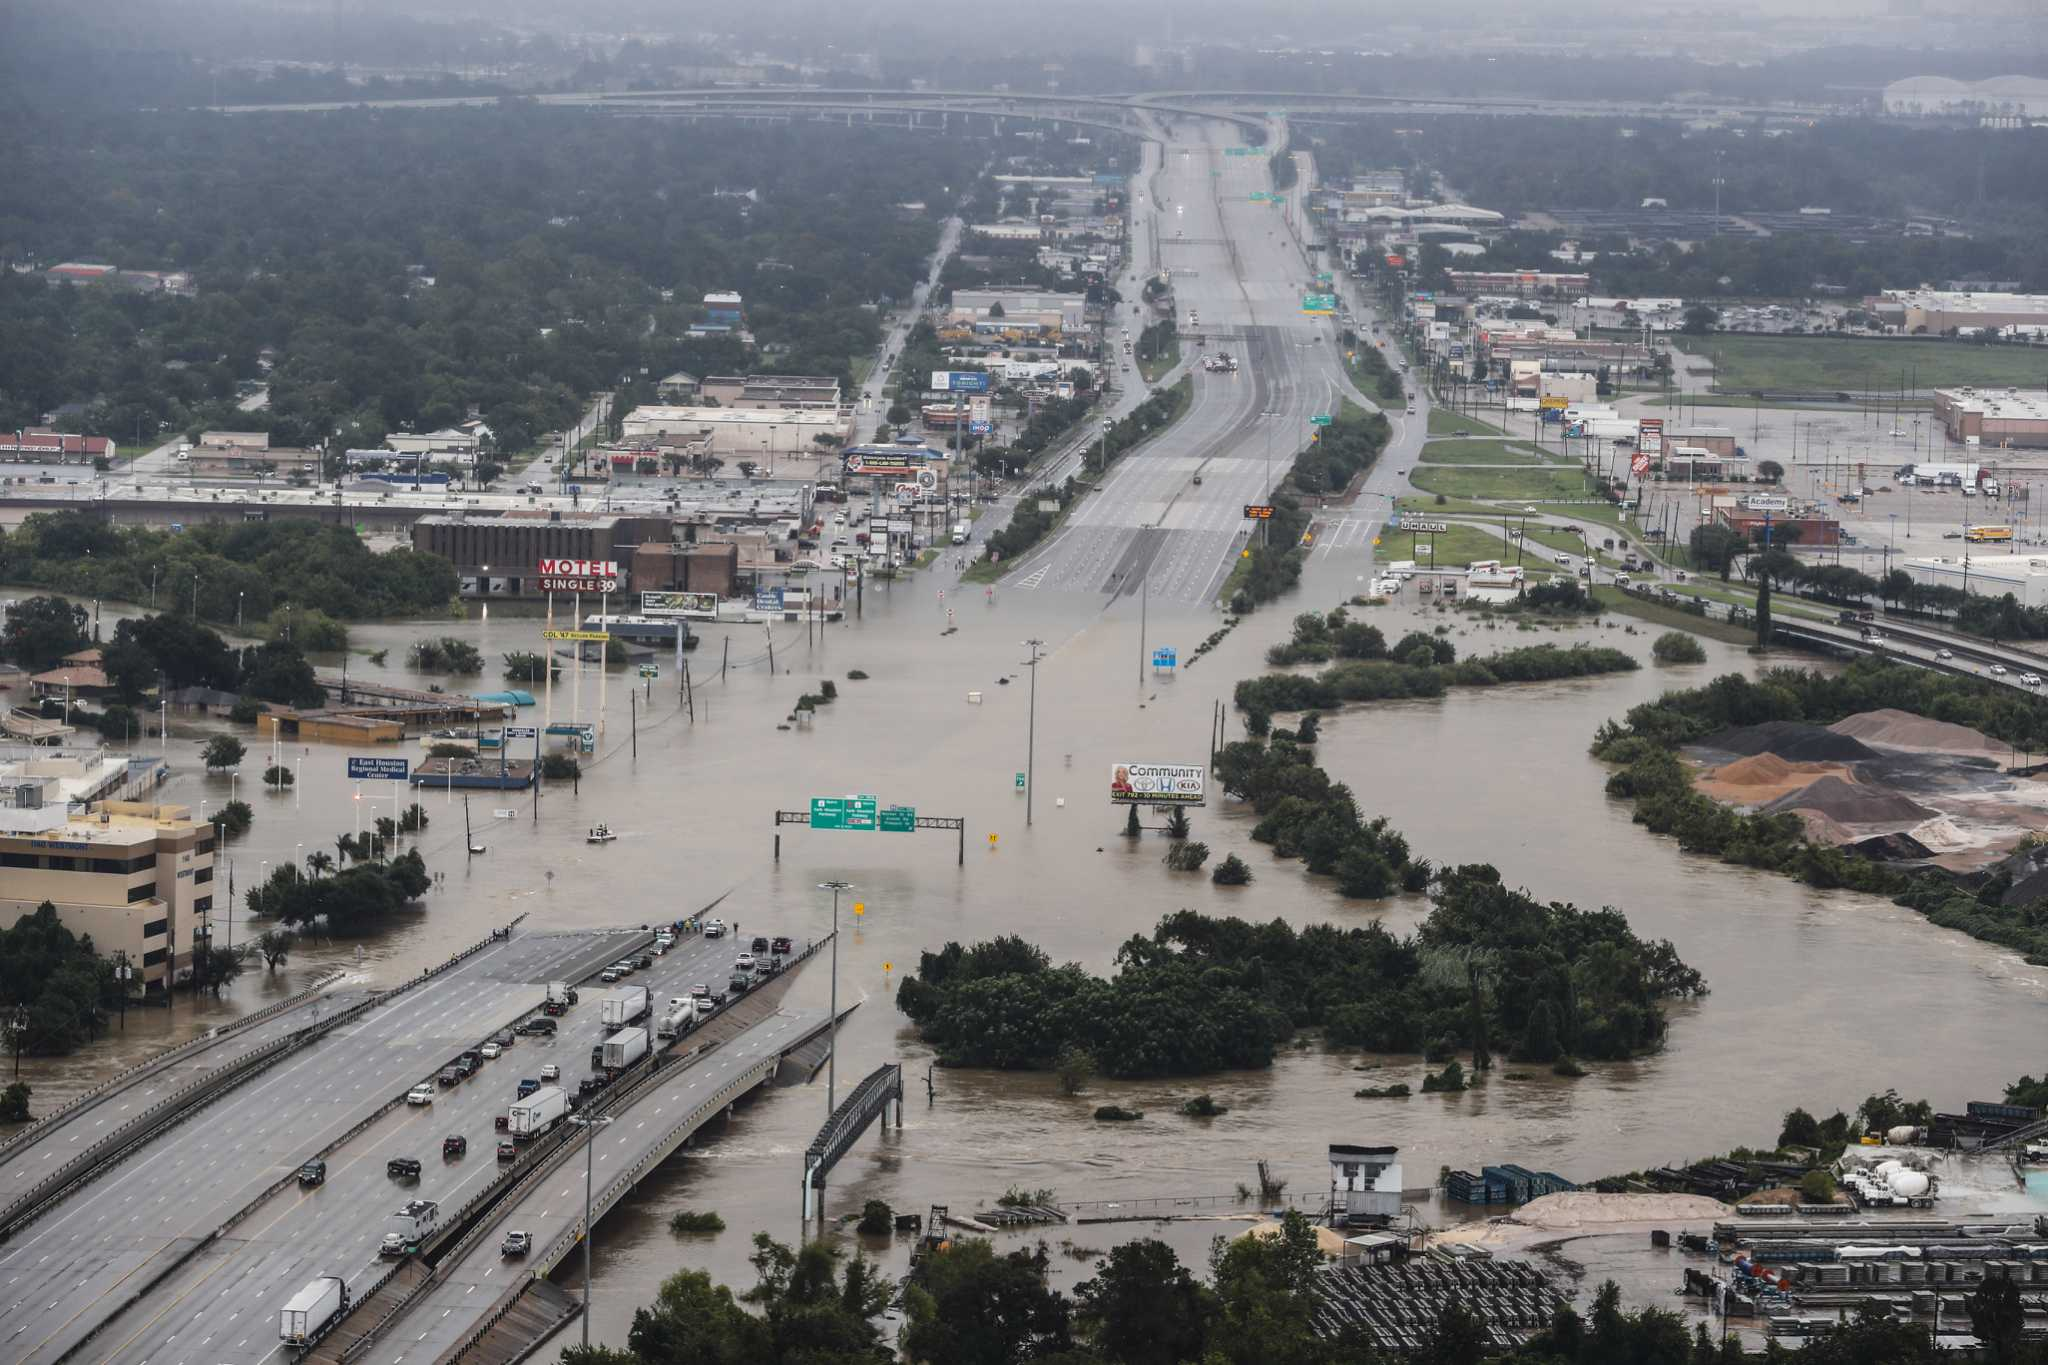 harvey u0026 39 s houston from above  aerial photos show extreme